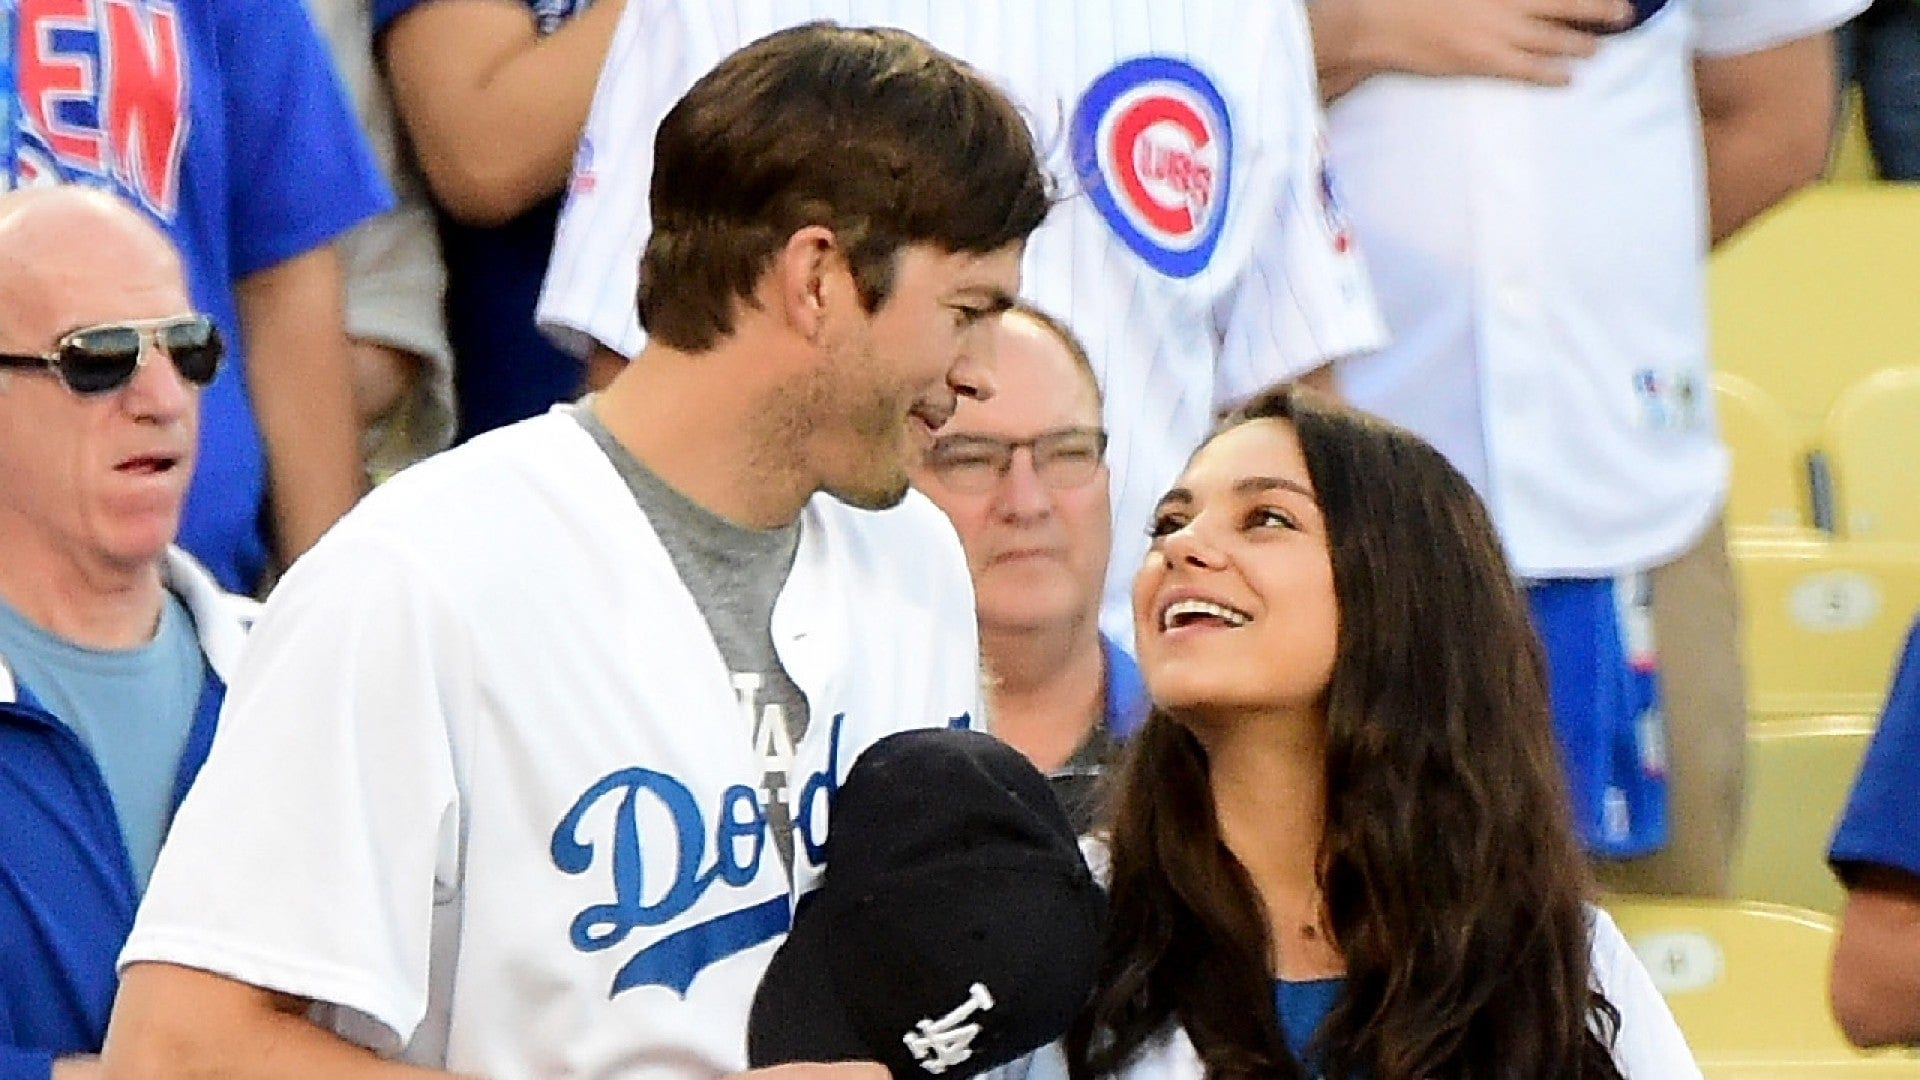 Who is Ashton Kutcher dating?